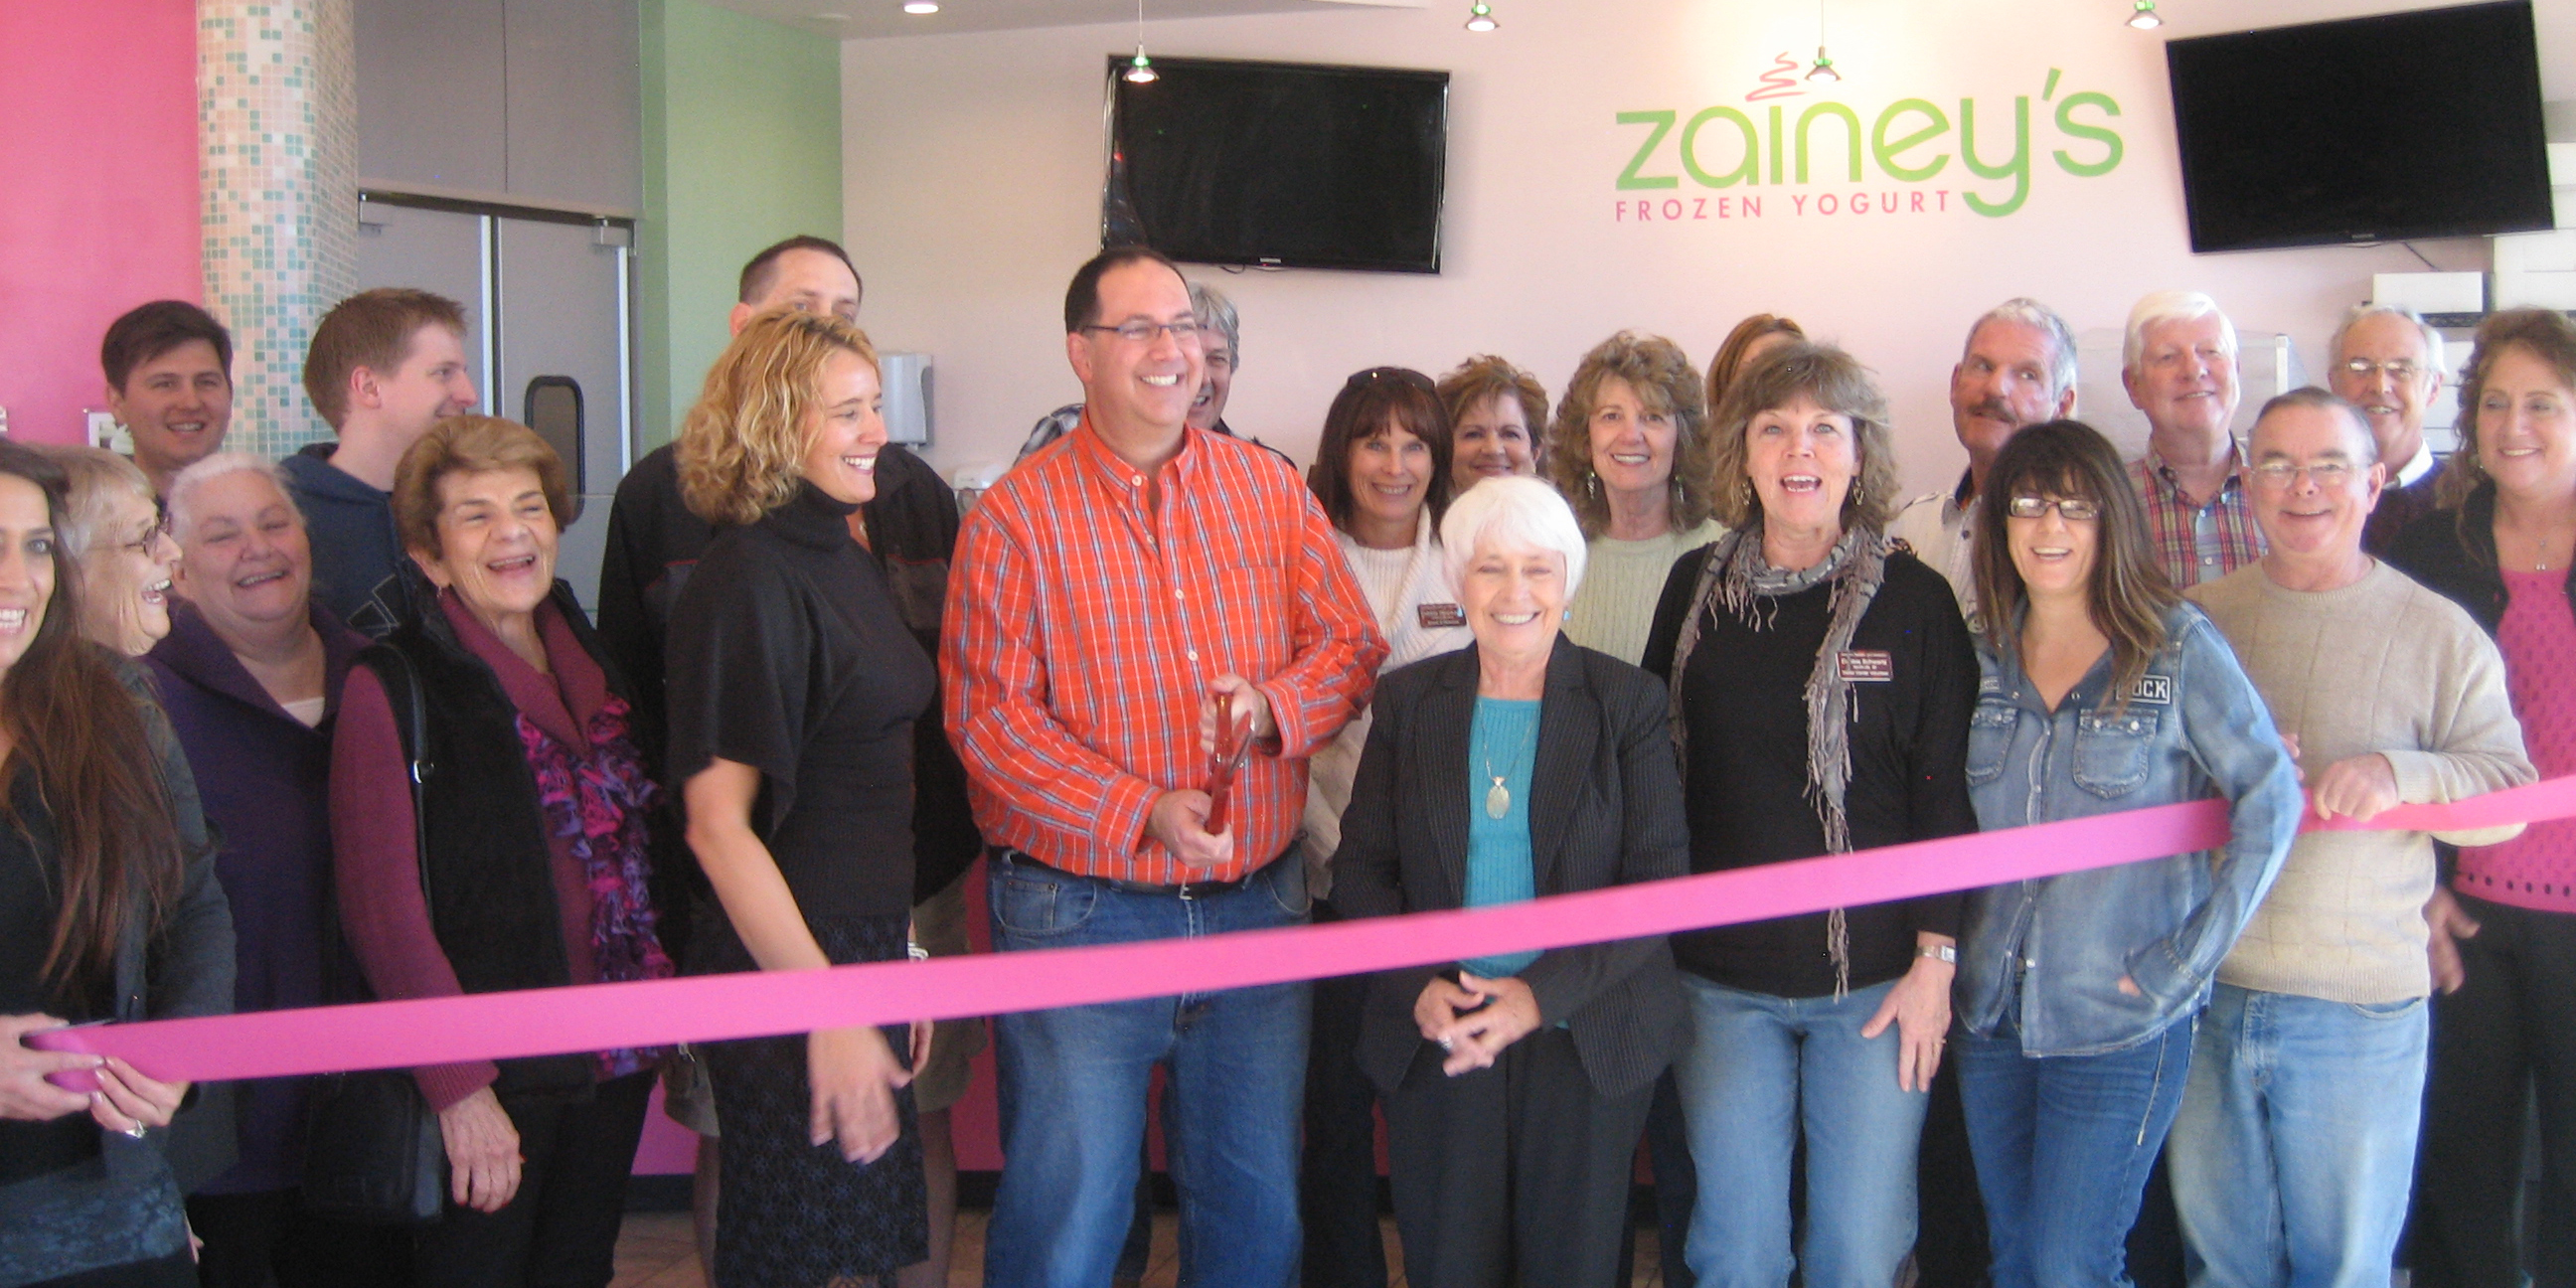 Zainey's ribbon cutting